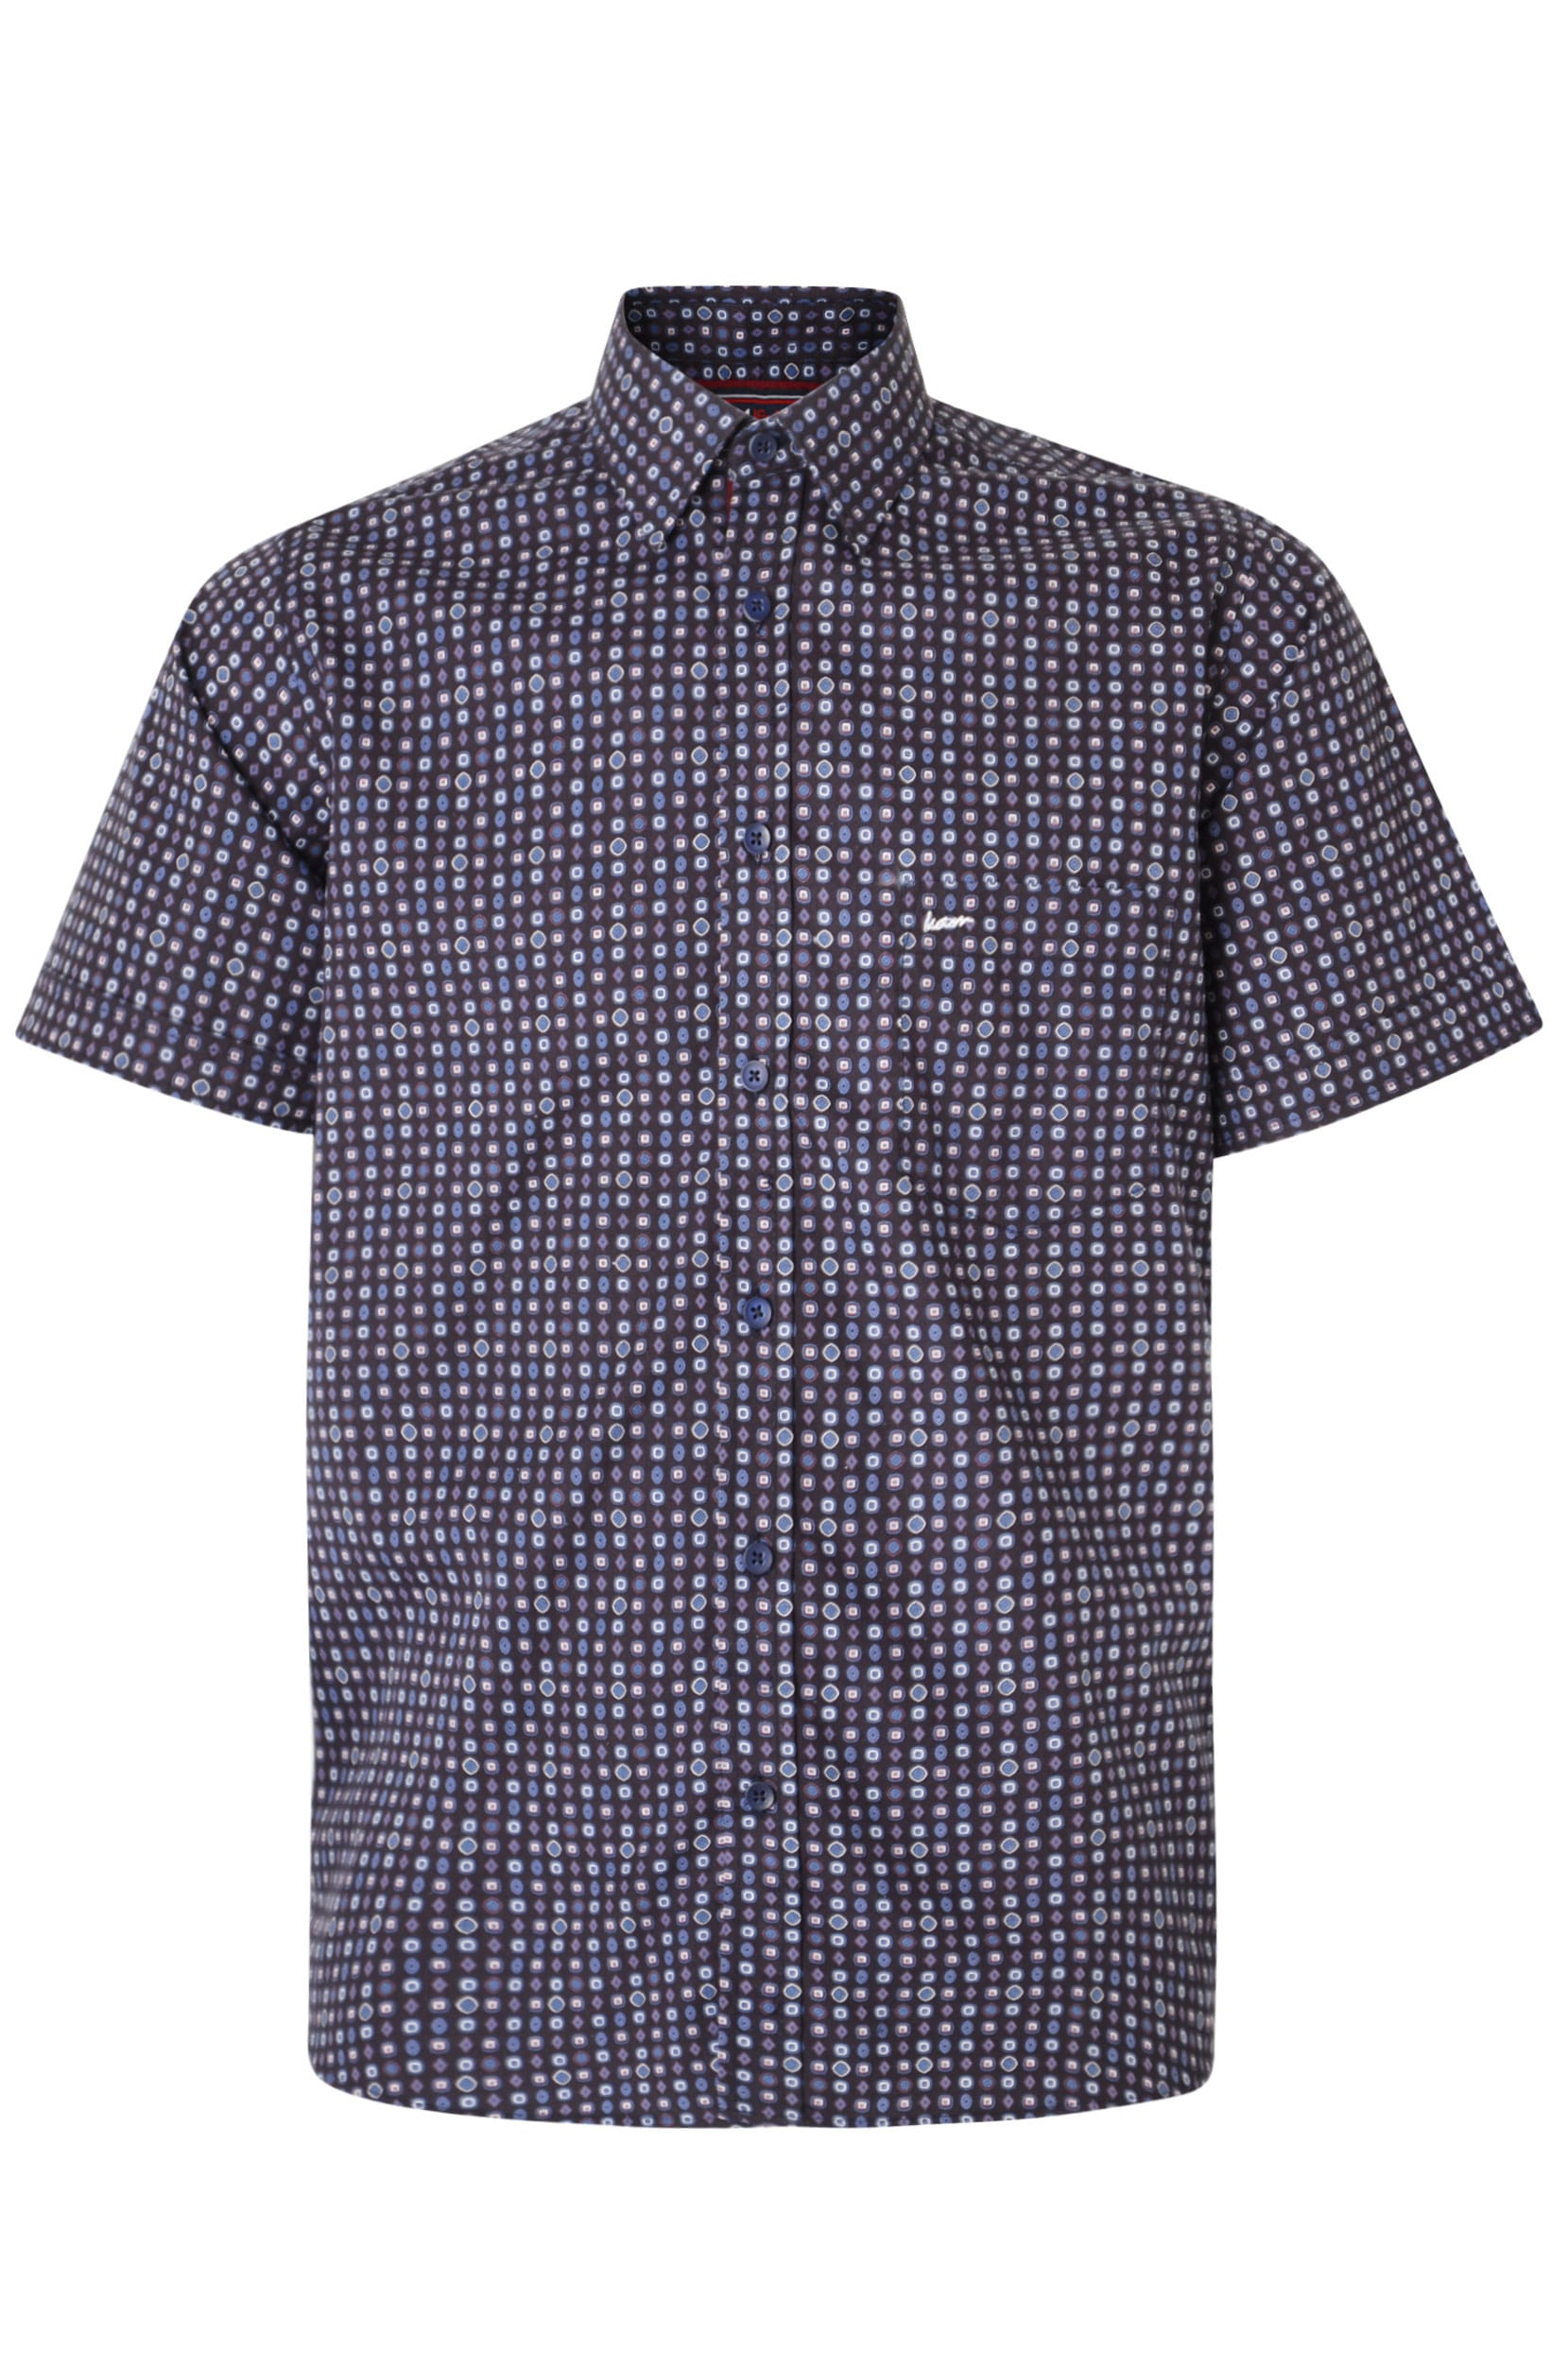 KAM Navy Dobby Print Short Sleeve Shirt